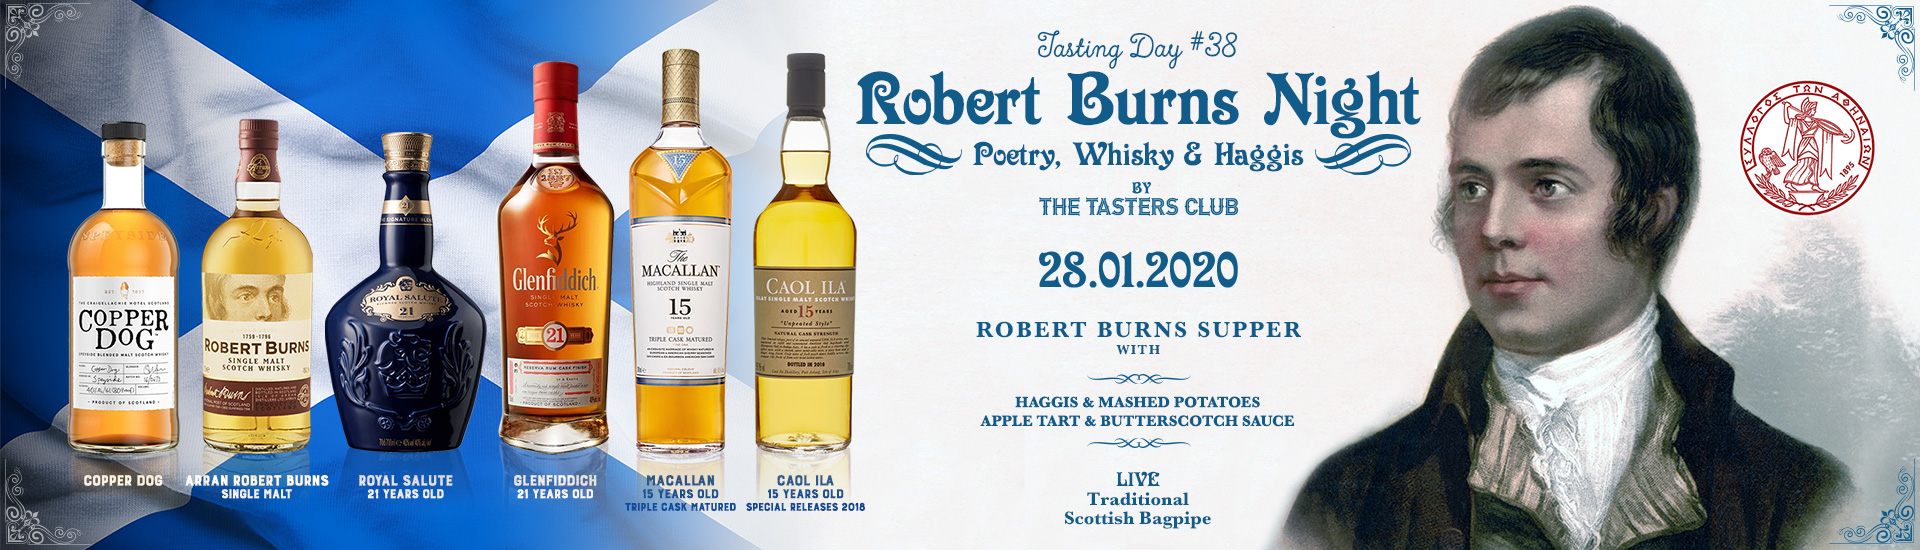 robert burns night 2020 the tasters club whisky tasting